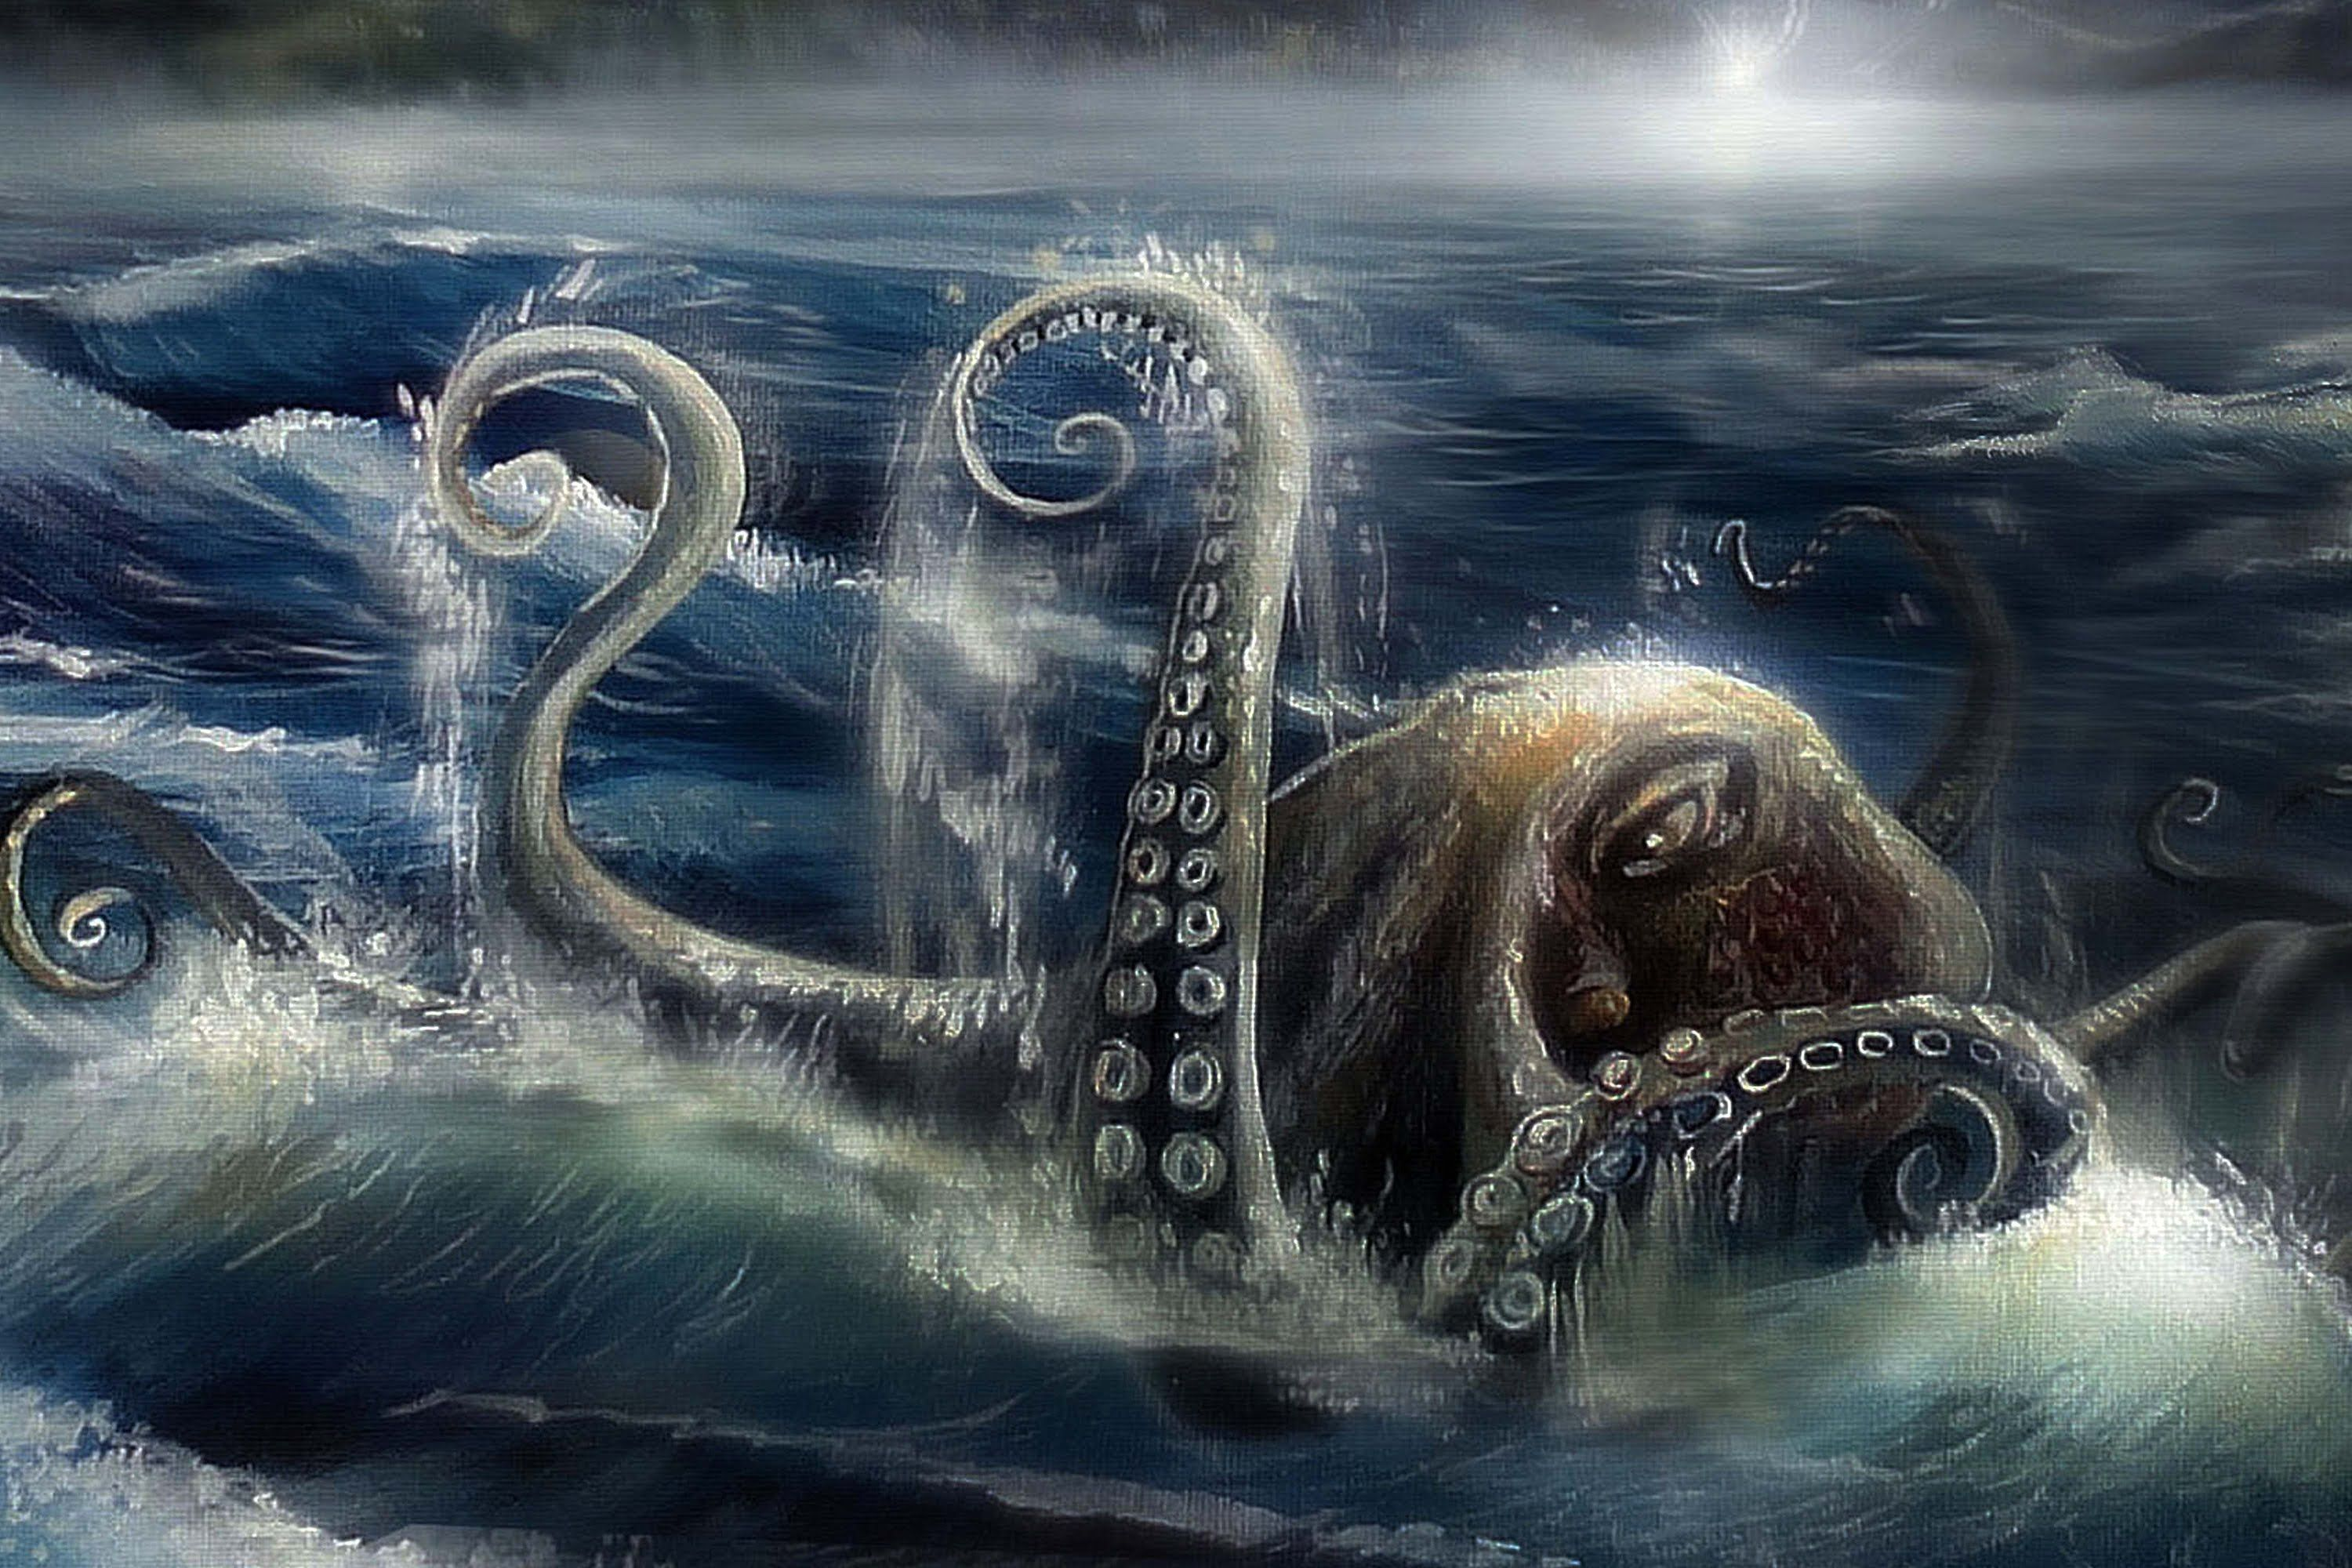 Wallpaper Ship Drowning Hd Creative Graphics 8497: The Gigantic Octopus Is An Octopus Capable Of Drowning